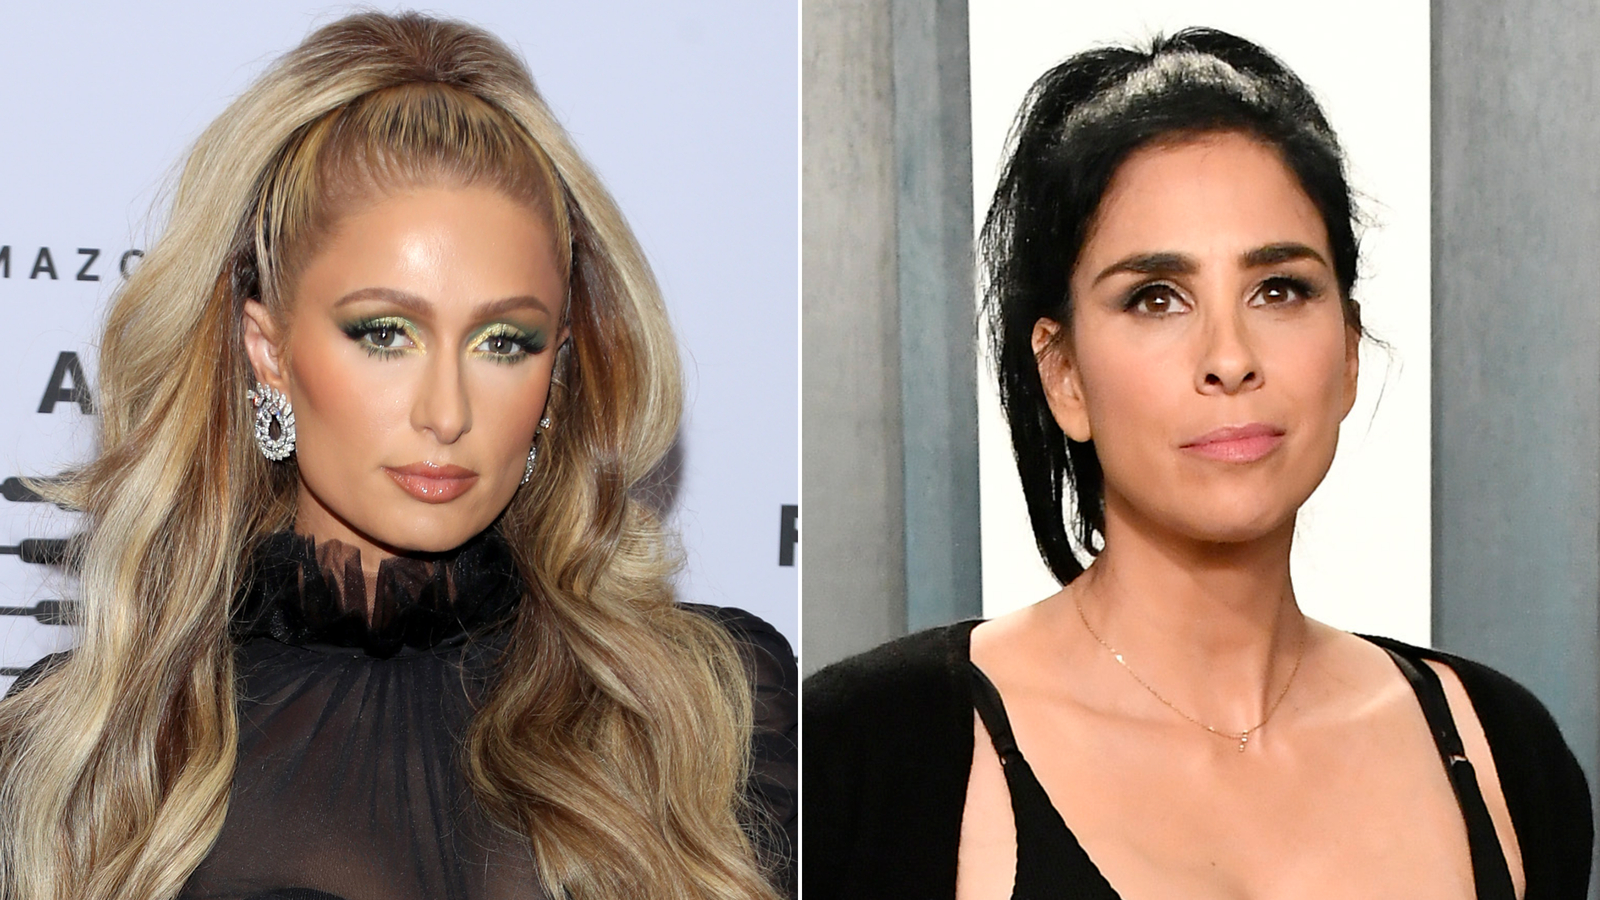 Paris Hilton got an apology from Sarah Silverman for the jail jokes